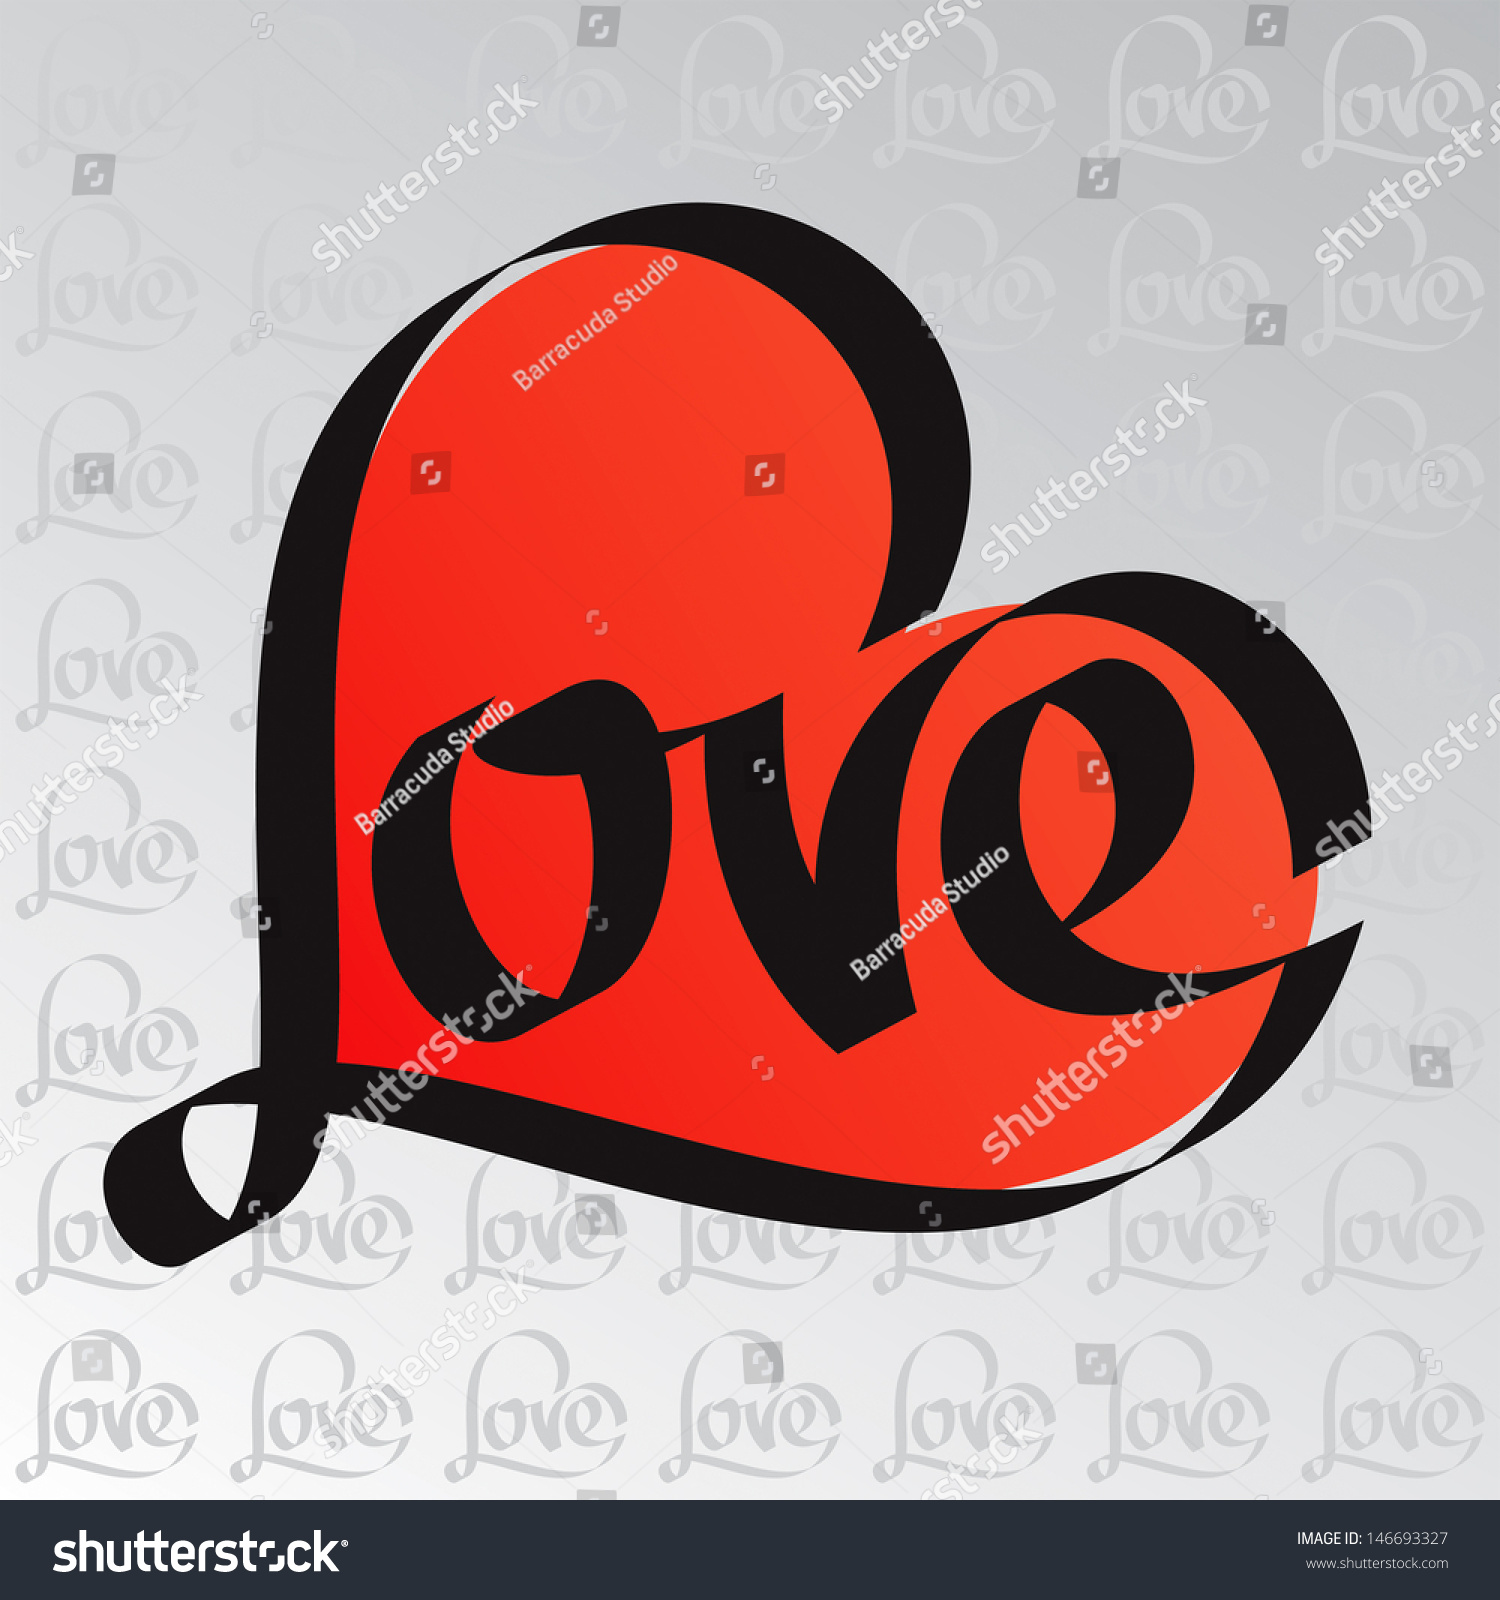 Heart typography love calligraphy stock vector